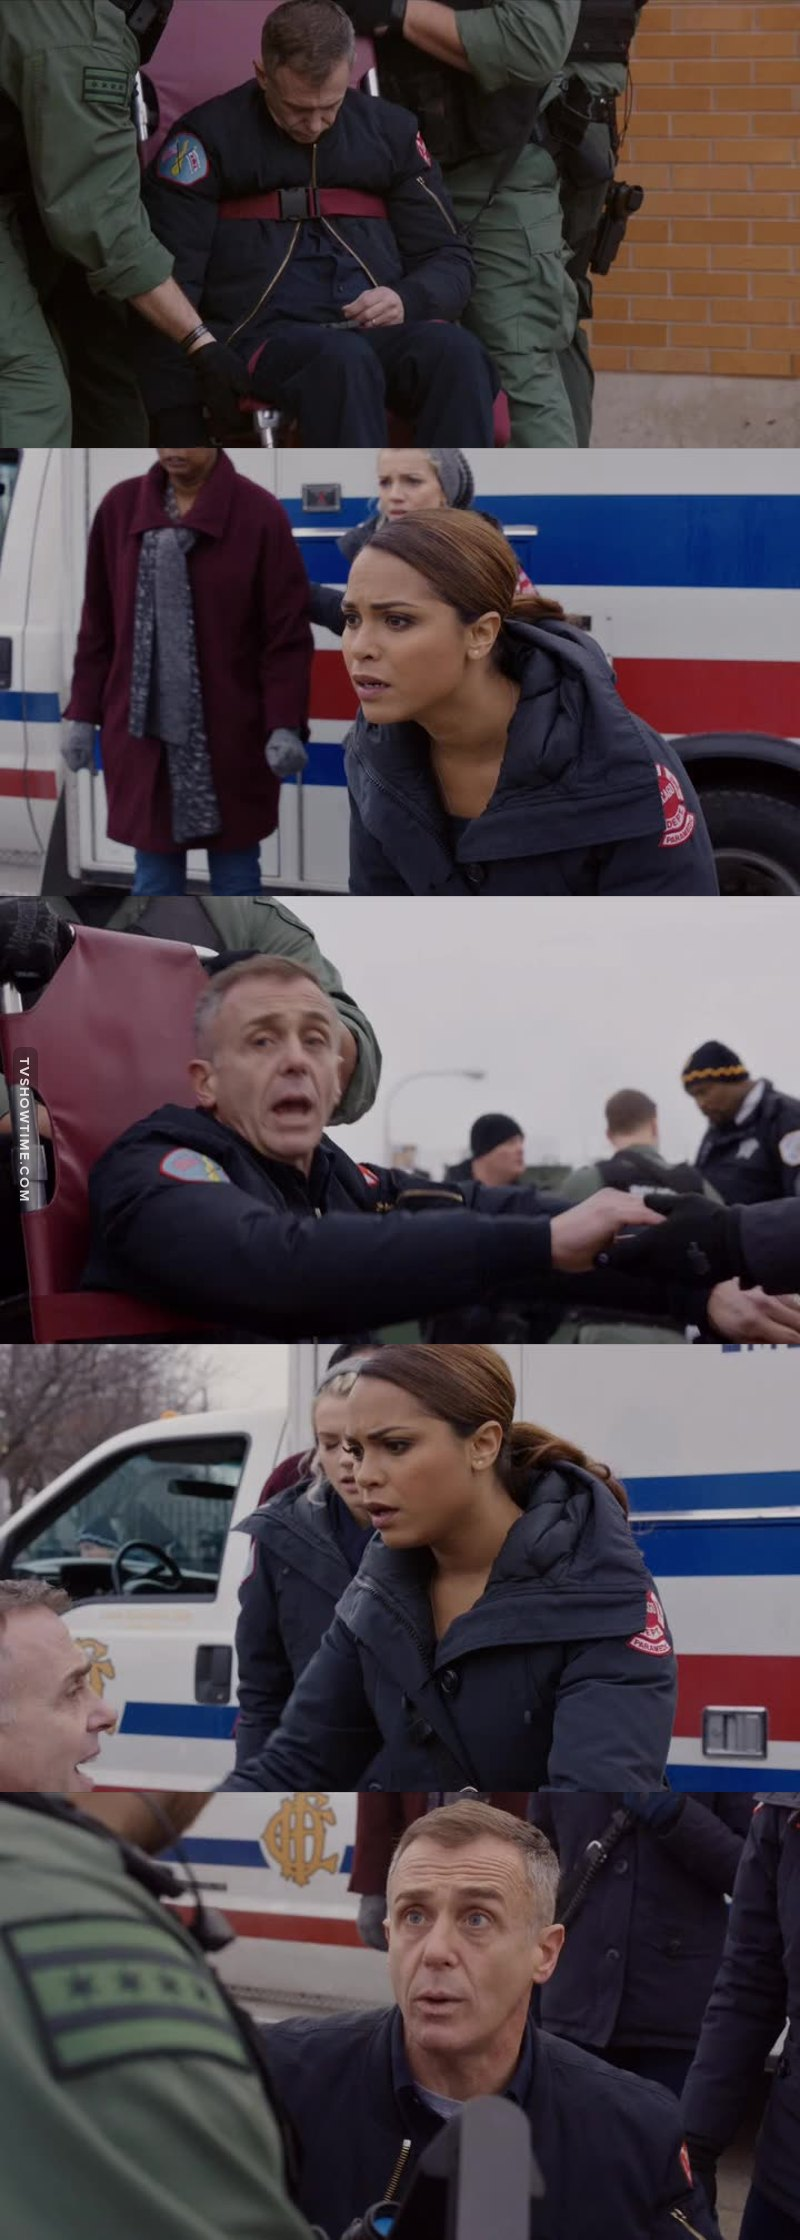 Herrmann faking his heart attack was genius! Loved this episode (: